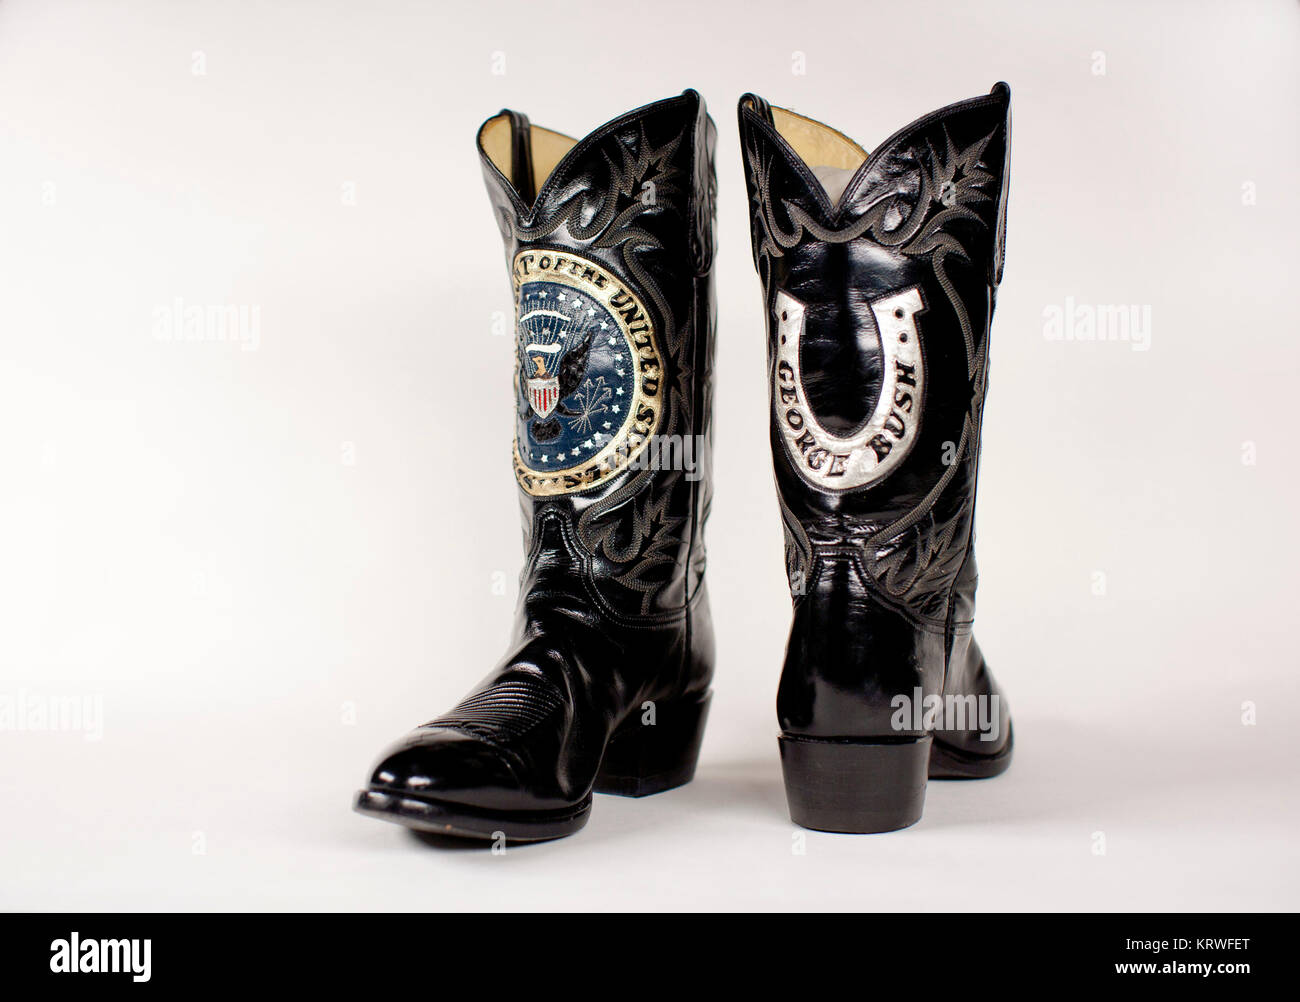 Black And Silver Boots Stock Photos Black And Silver Boots Stock